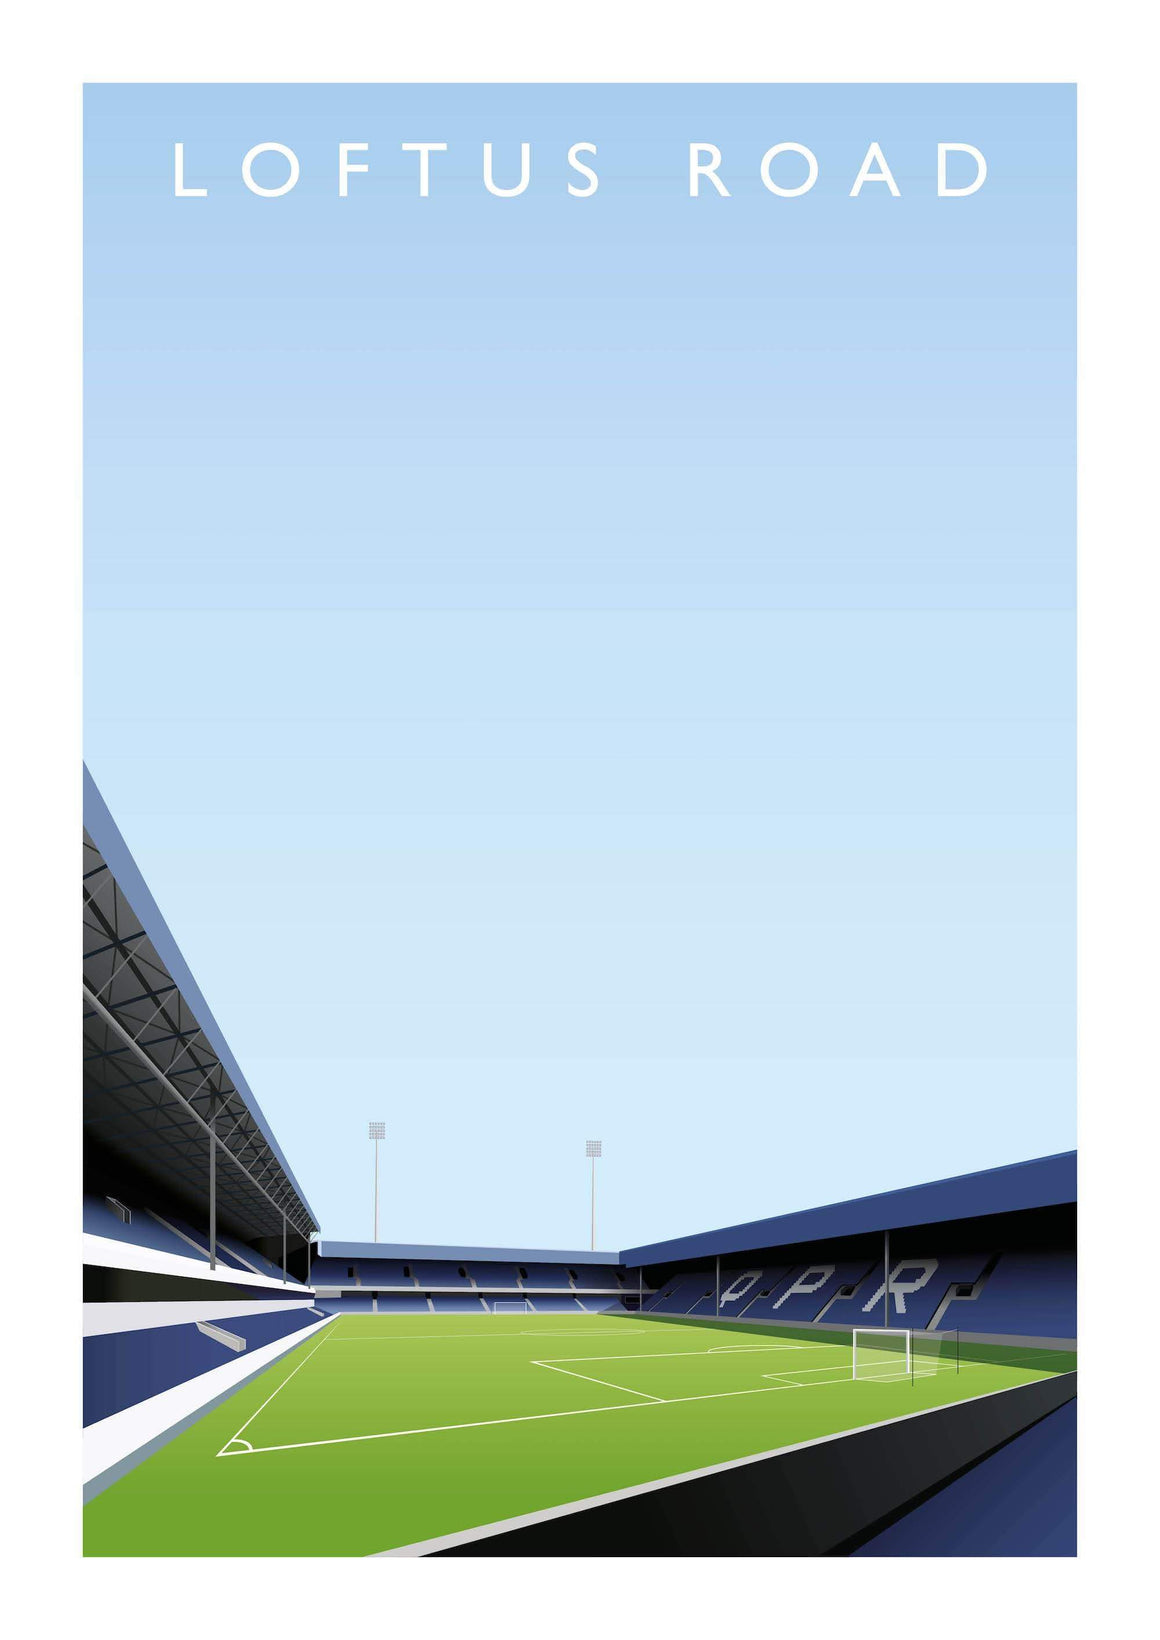 Illustrated poster of QPR ground Loftus Road - Football Shirt Collective